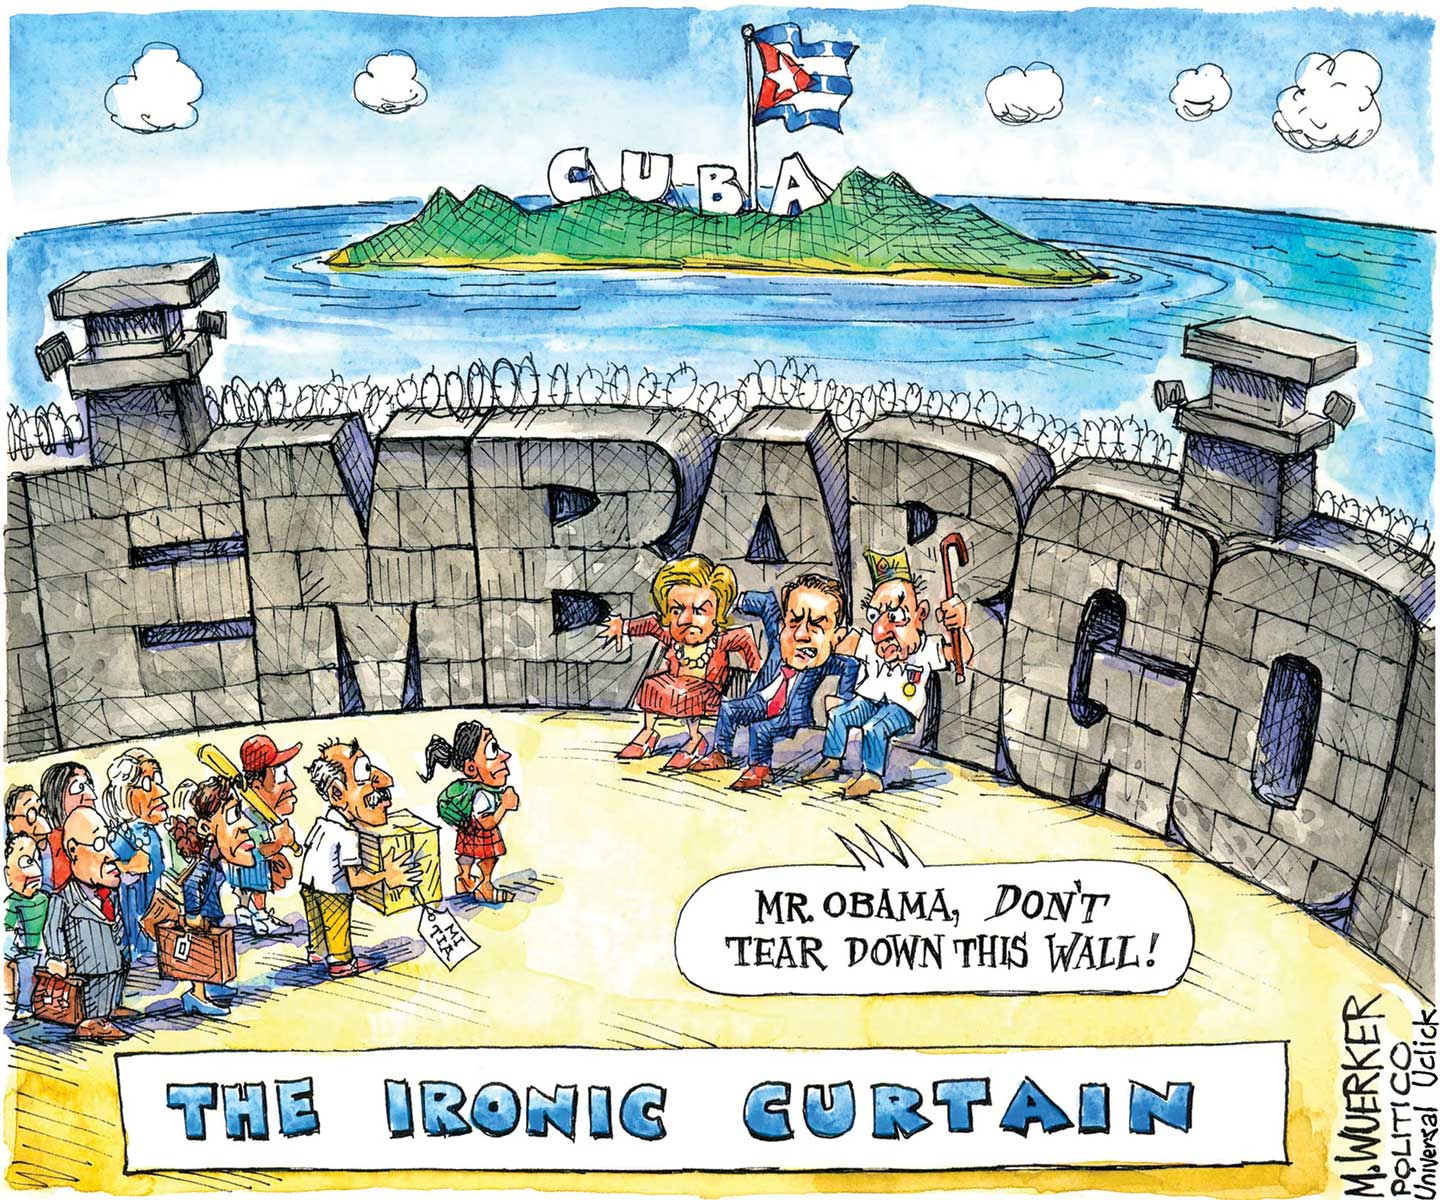 Iron curtain cartoon - Why Us Cuba Normalization Is Accelerating